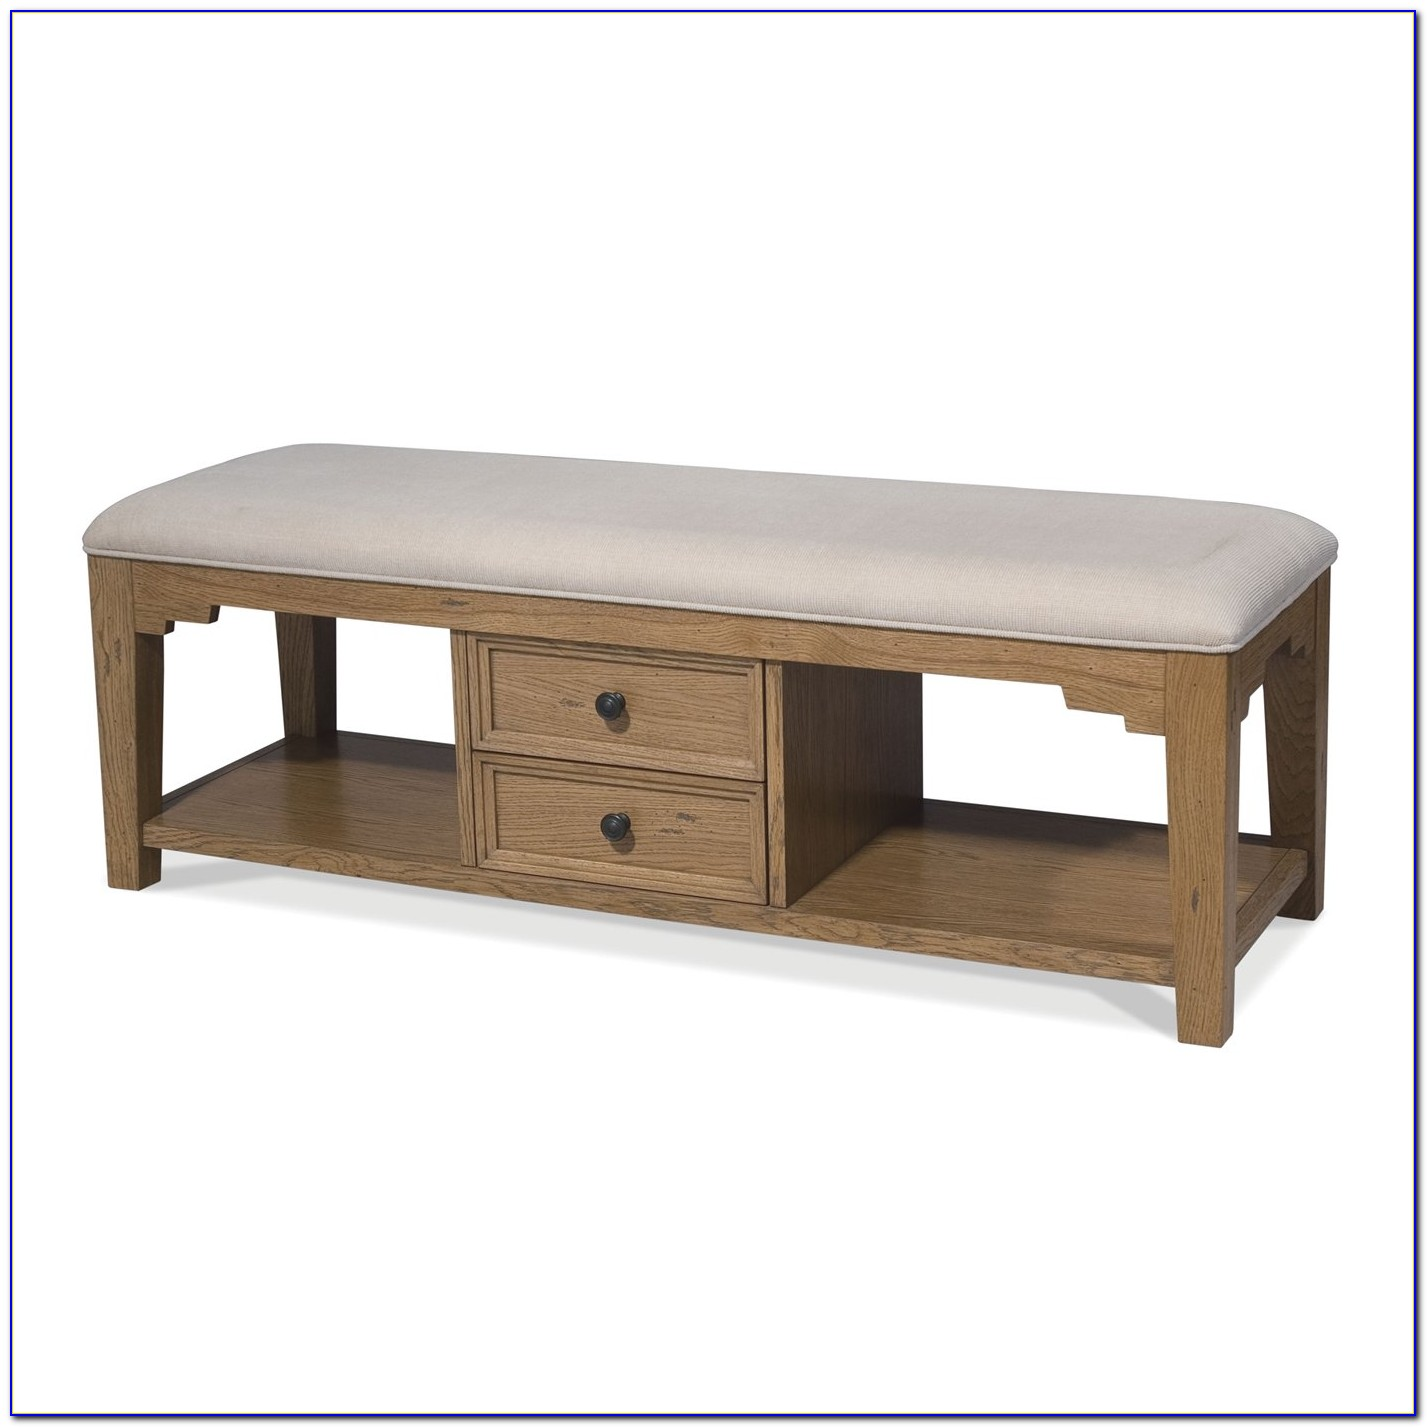 Benches For Bedroom With Storage